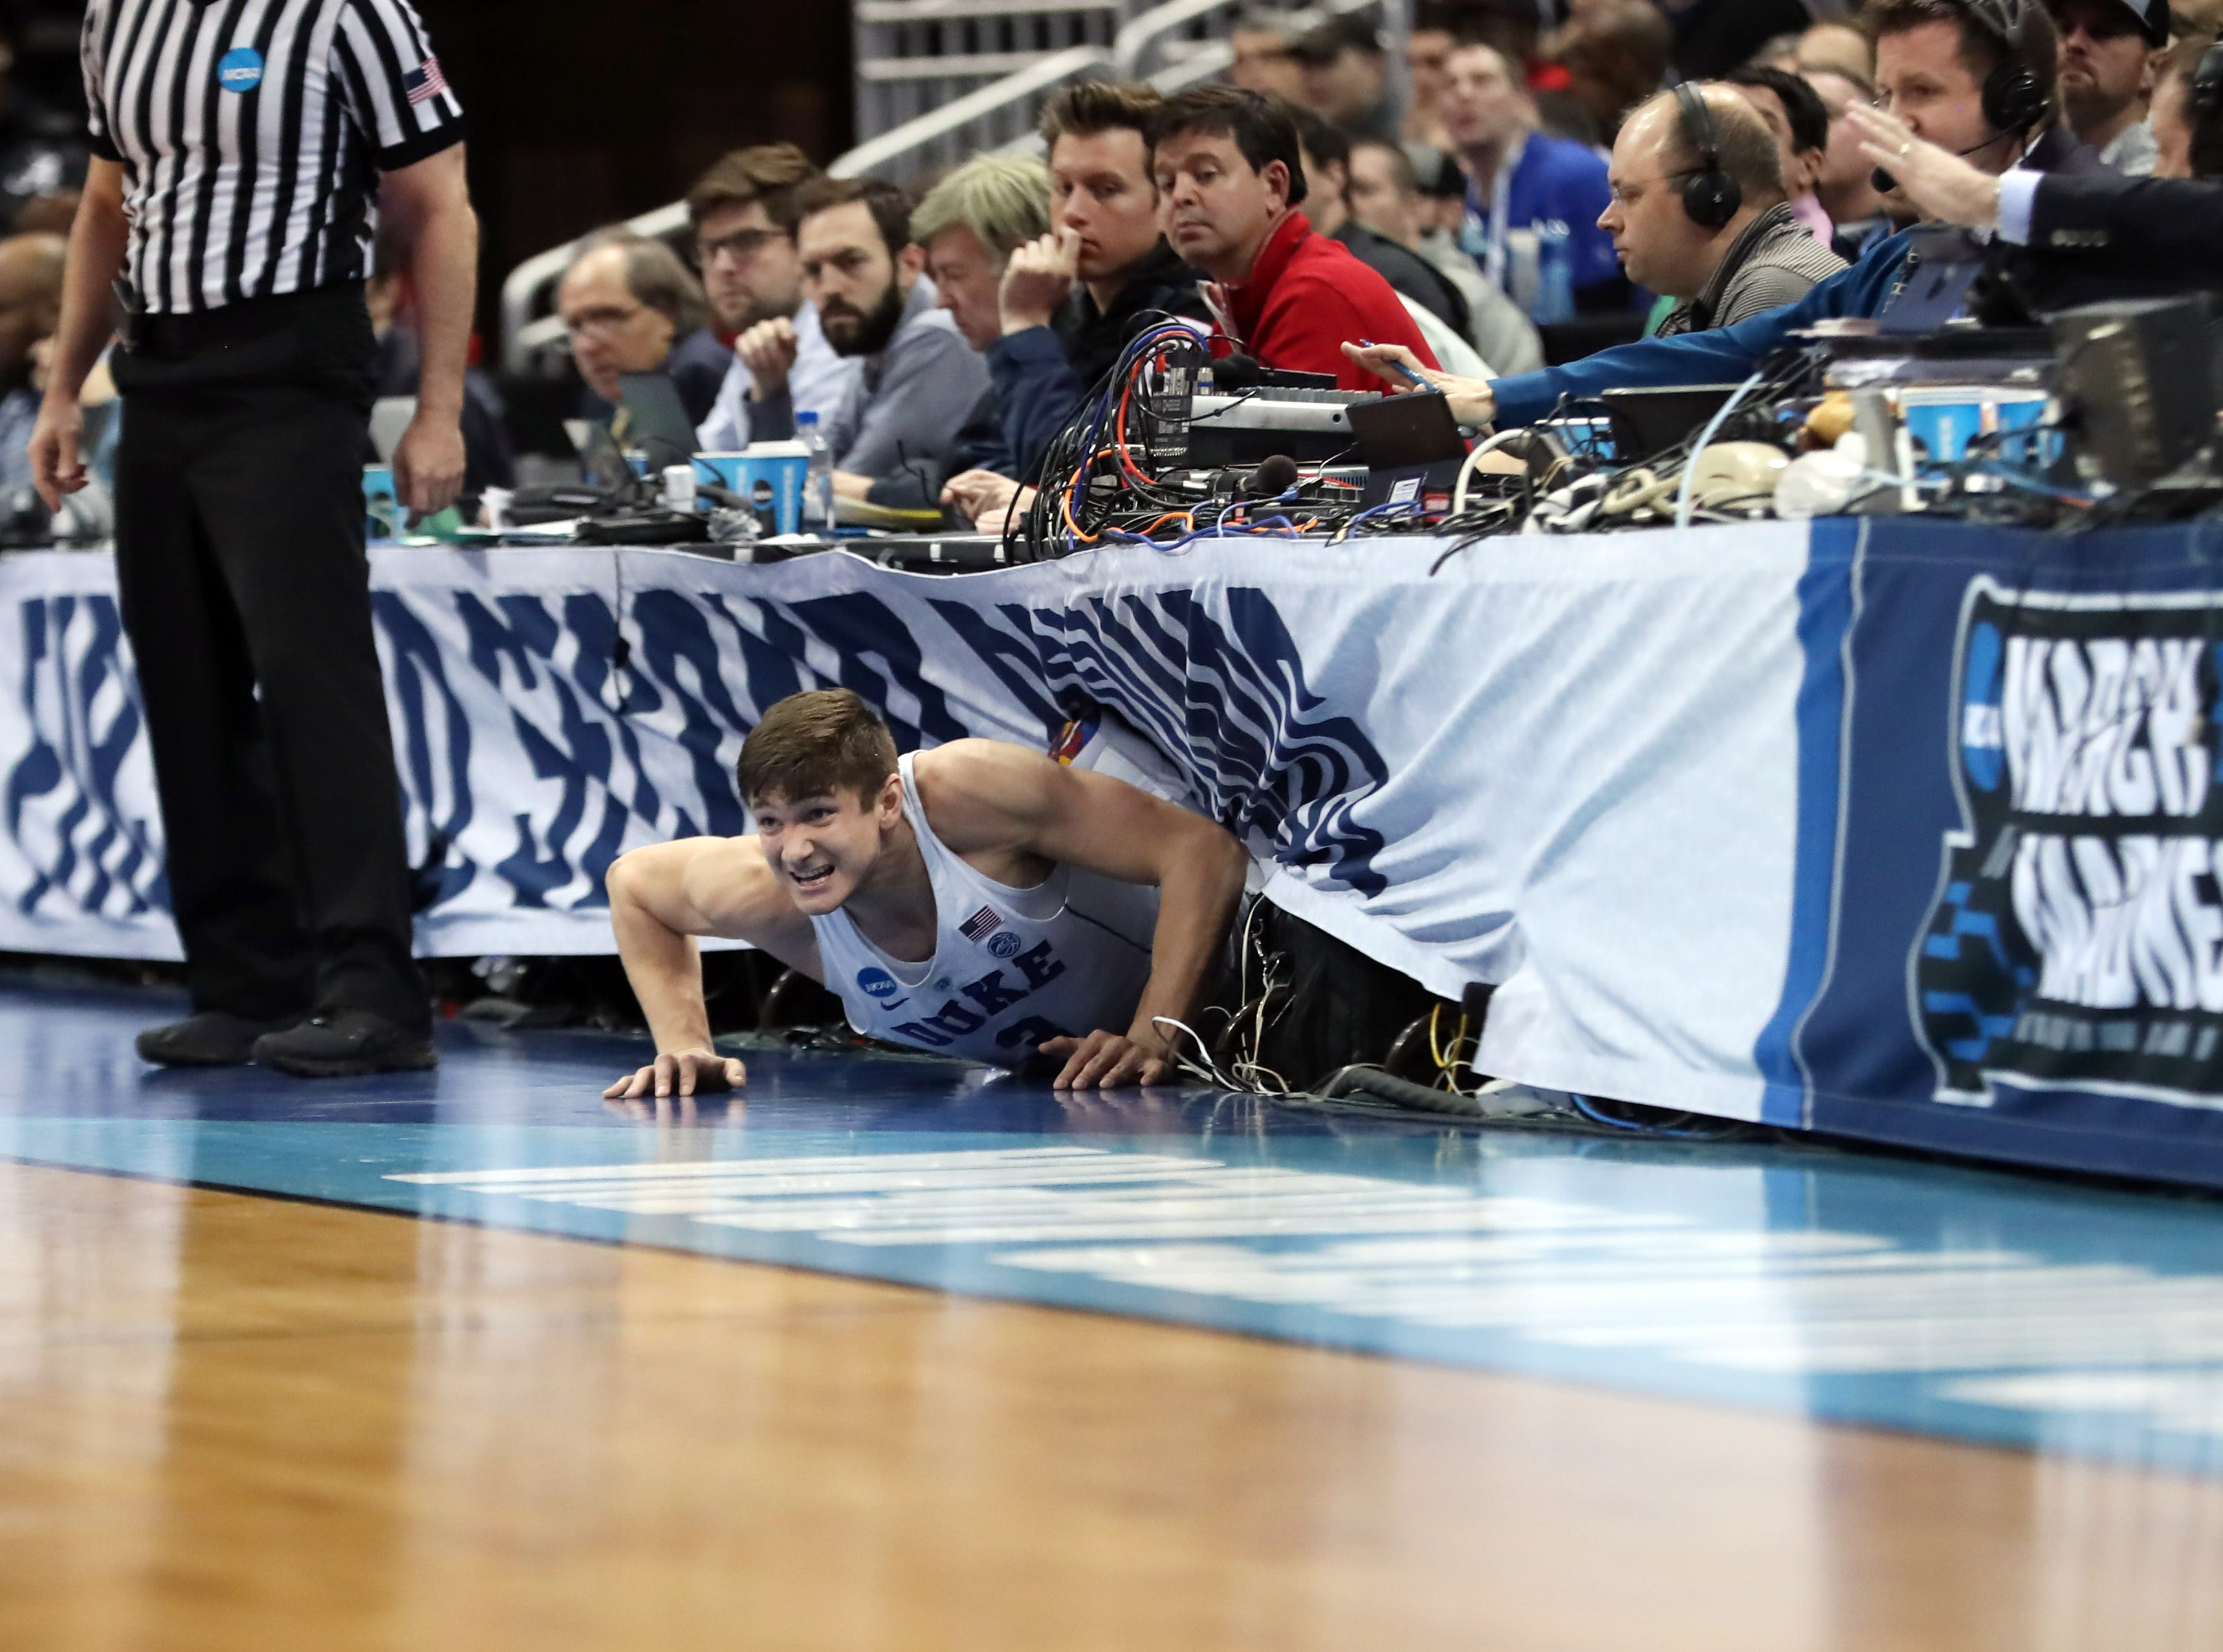 March 17: Duke Blue Devils guard Grayson Allen (3) slides into a table after attempting to save a ball against the Rhode Island Rams during the second round of the NCAA tournament.